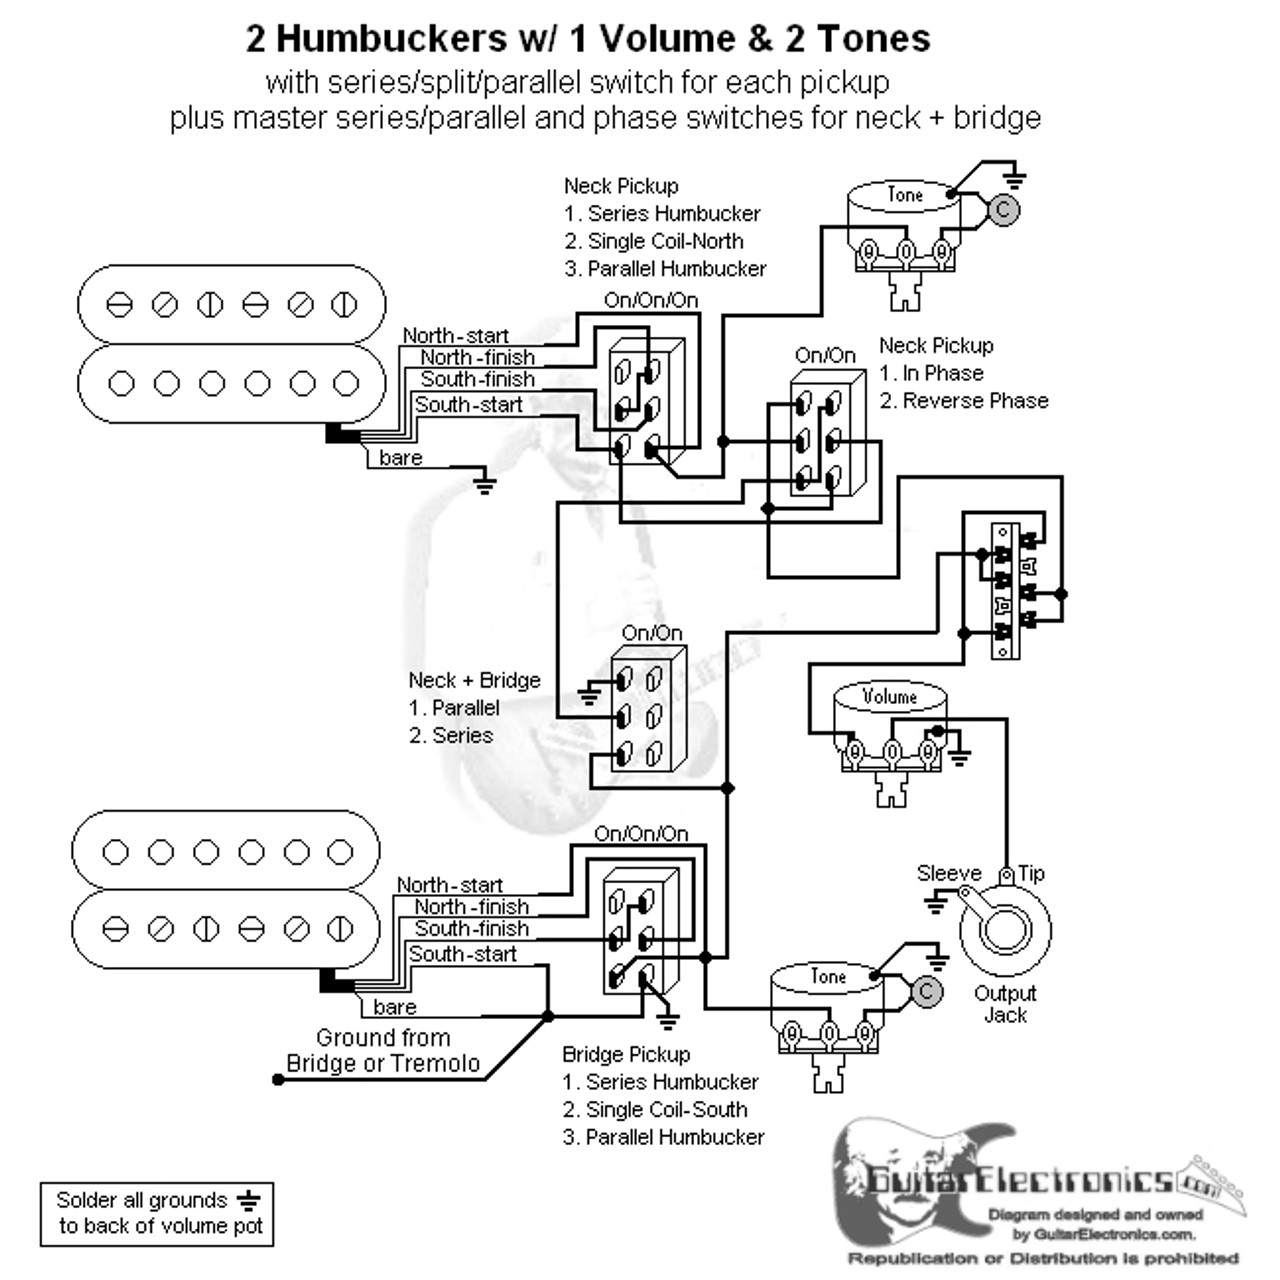 2 HBs/3-Way Lever/1 Vol/2 Tones/Series-Split-Parallel, Reverse Phase & Master Series-Parallel